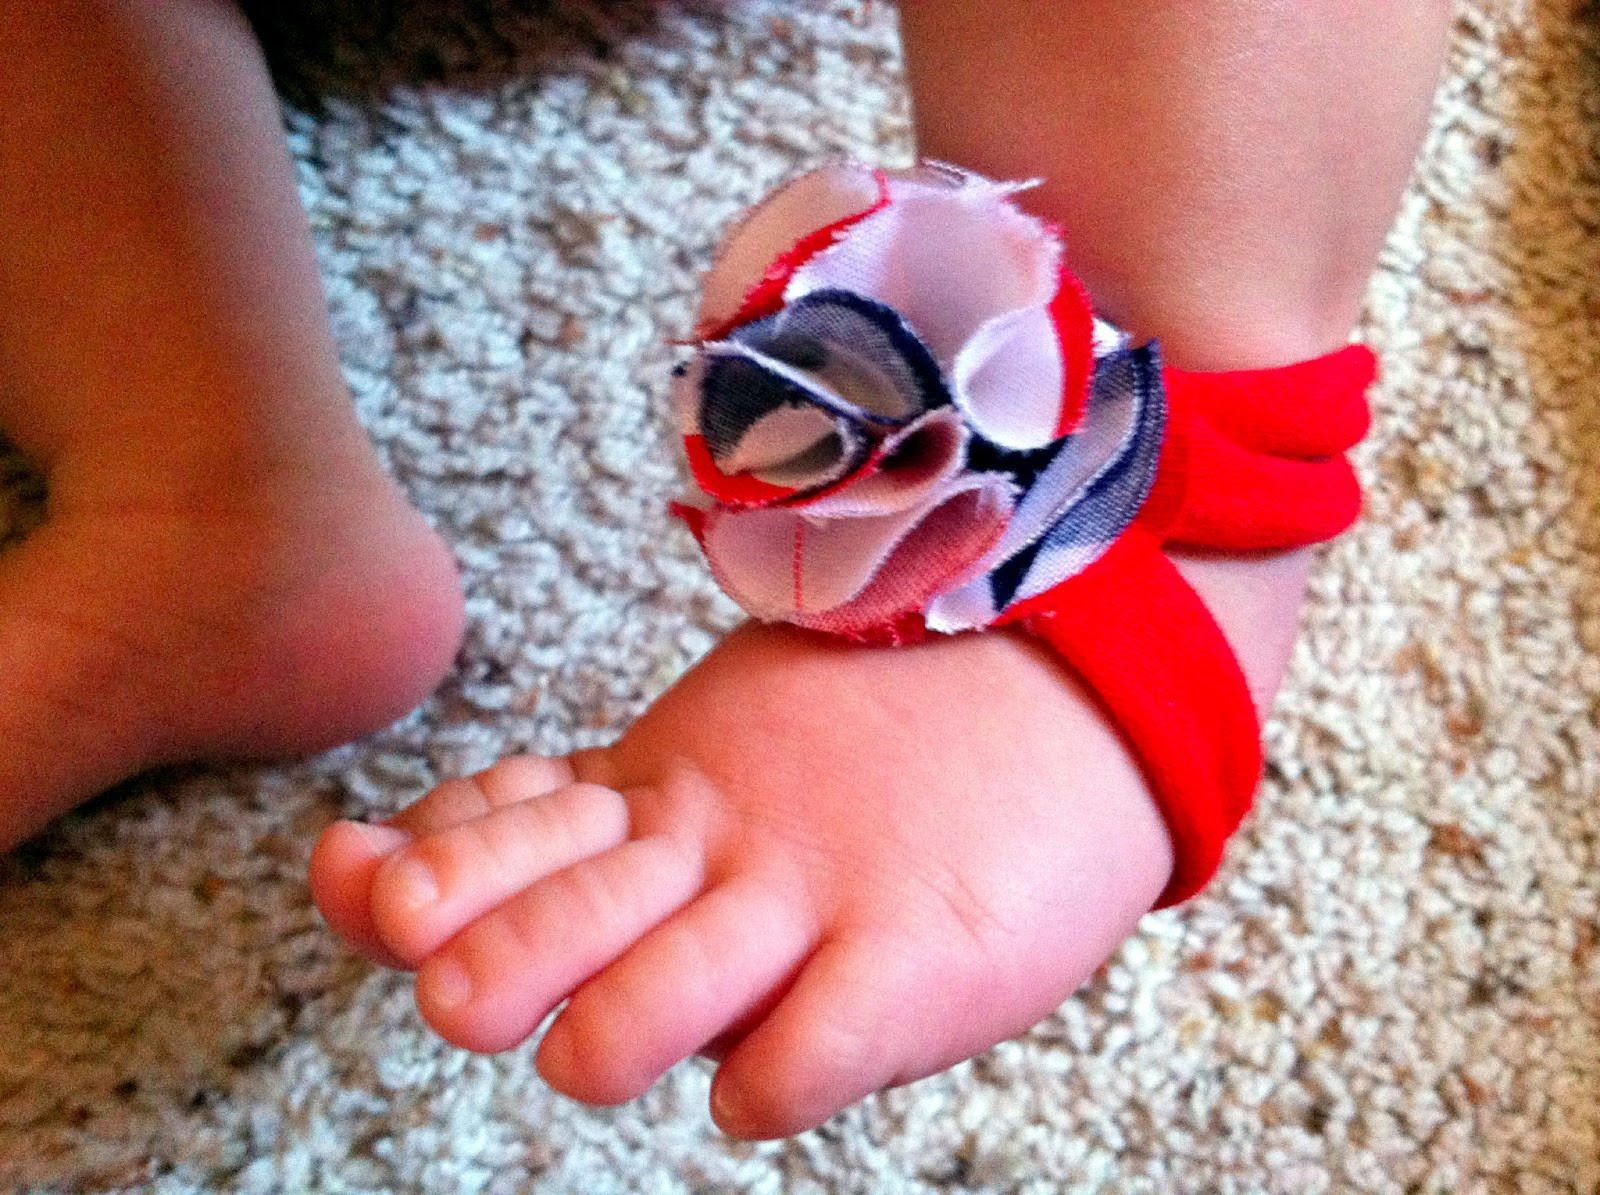 DIY Barefoot Sandals Baby  ting crafty DIY Baby Barefoot Sandals Tutorial 10